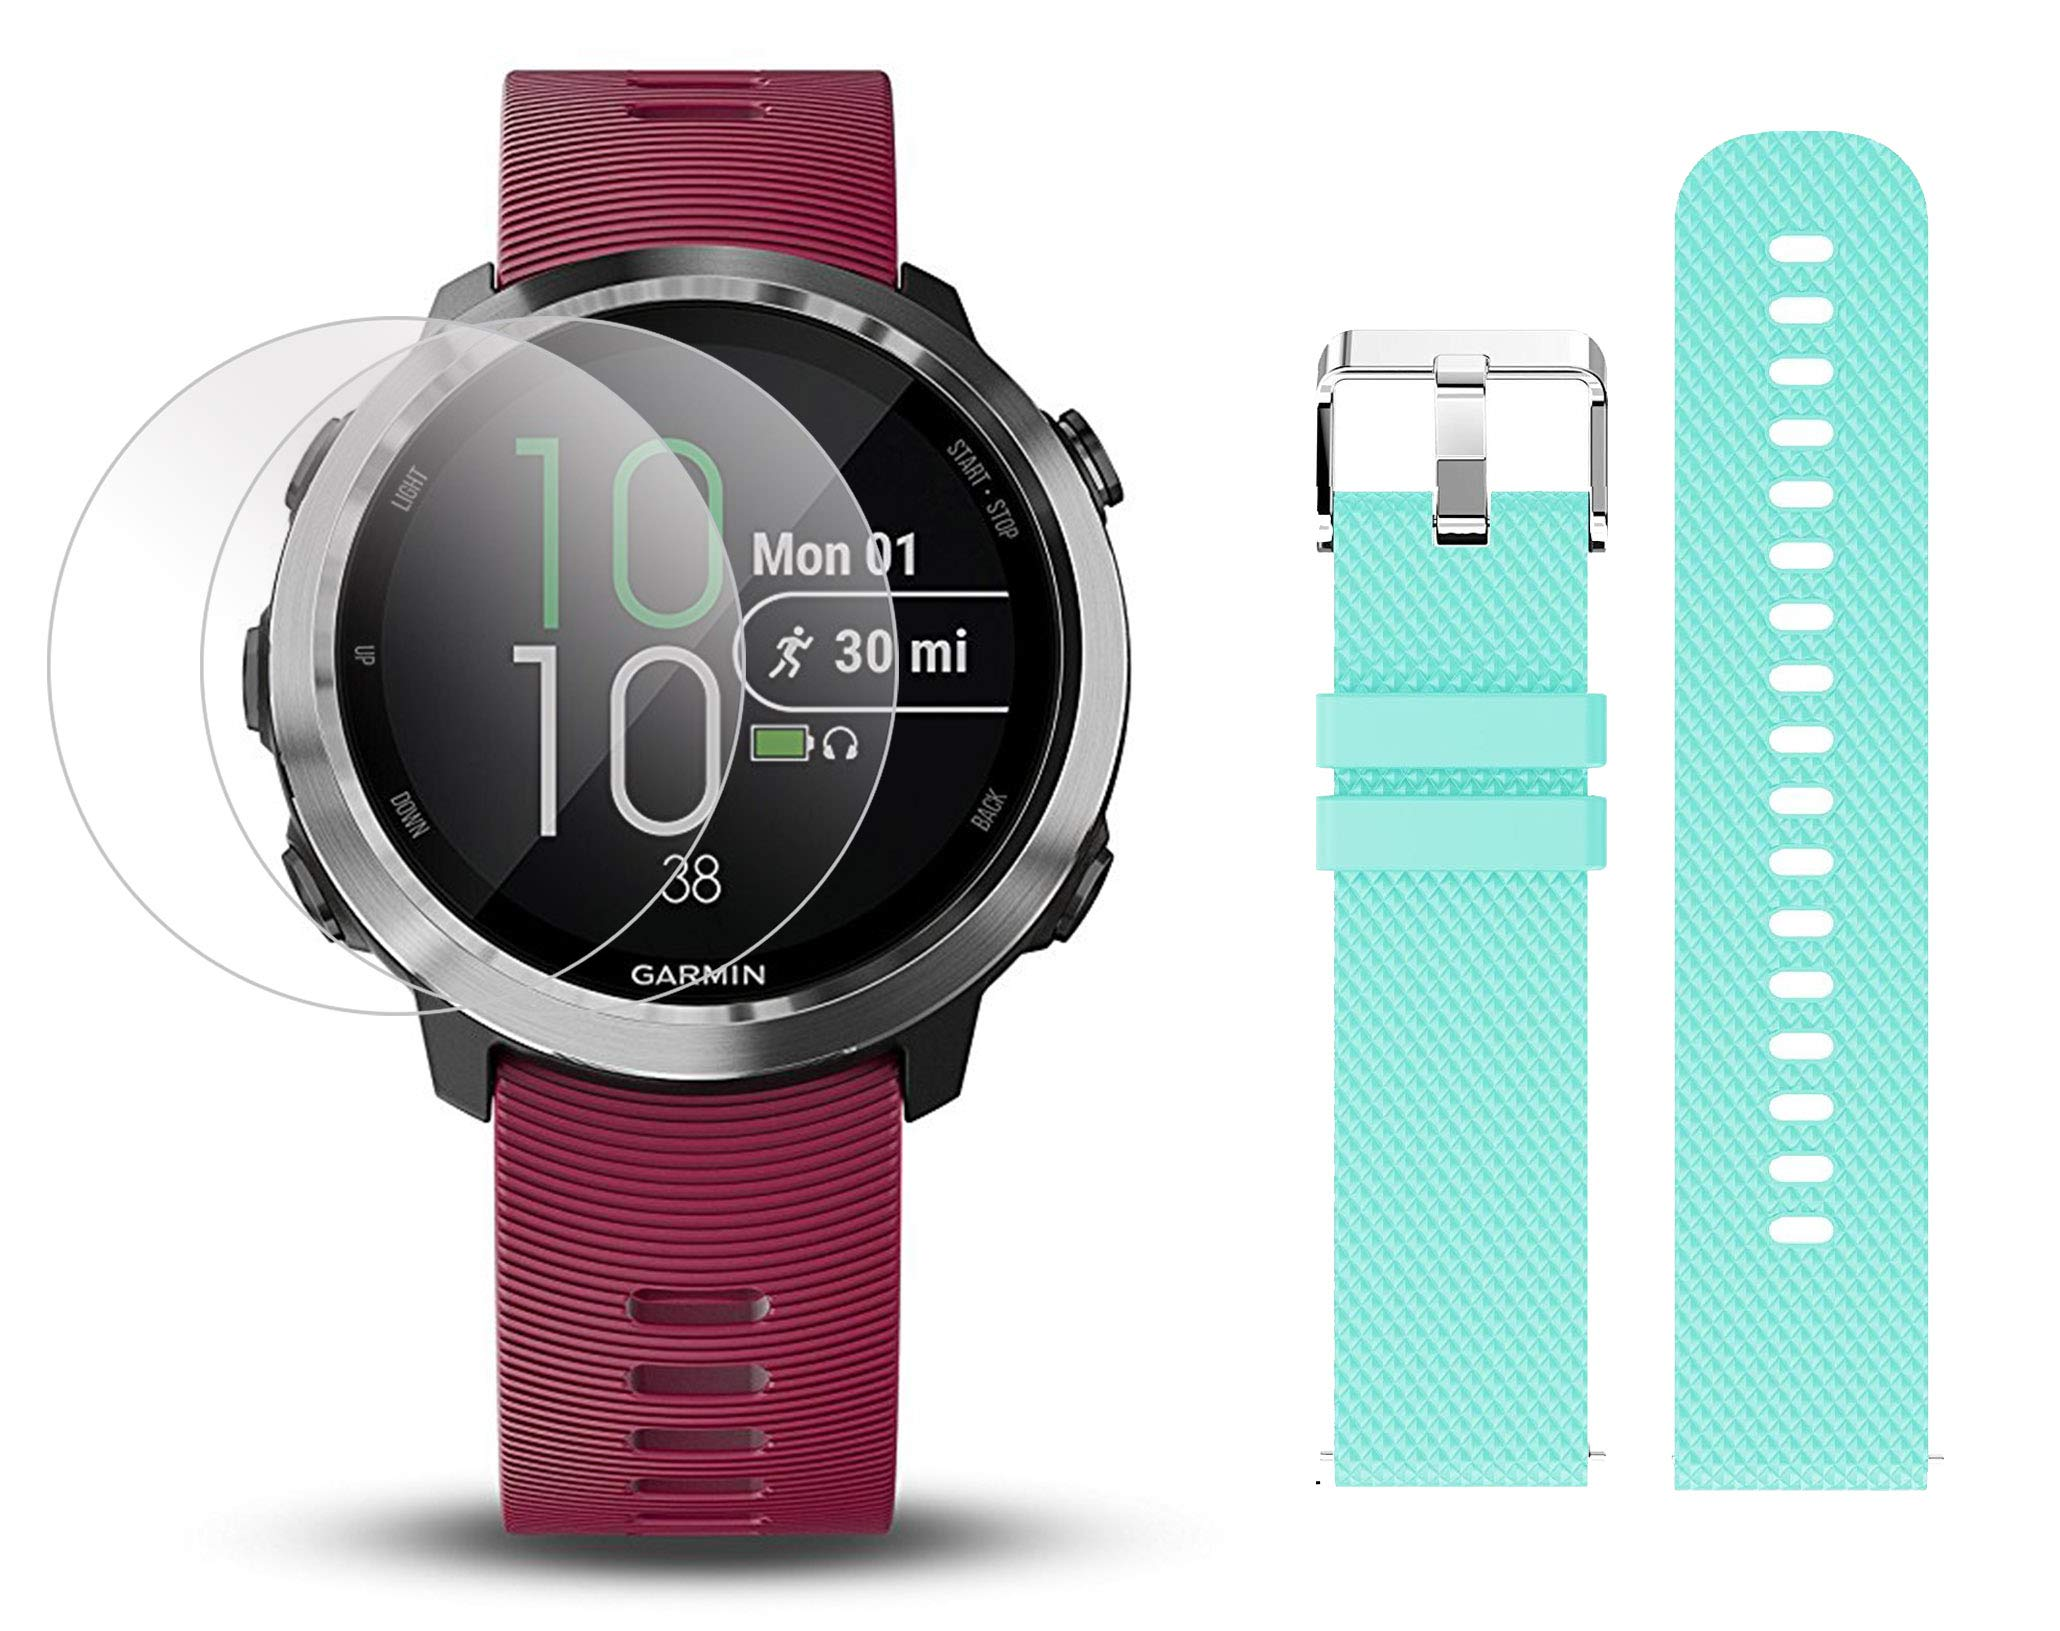 Garmin Forerunner 645 Music Bundle with Extra Band & HD Screen Protector Film (x4) | Running GPS Watch, Wrist HR, Music & Spotify, Garmin Pay (Cerise + Music, Teal) by PlayBetter (Image #1)